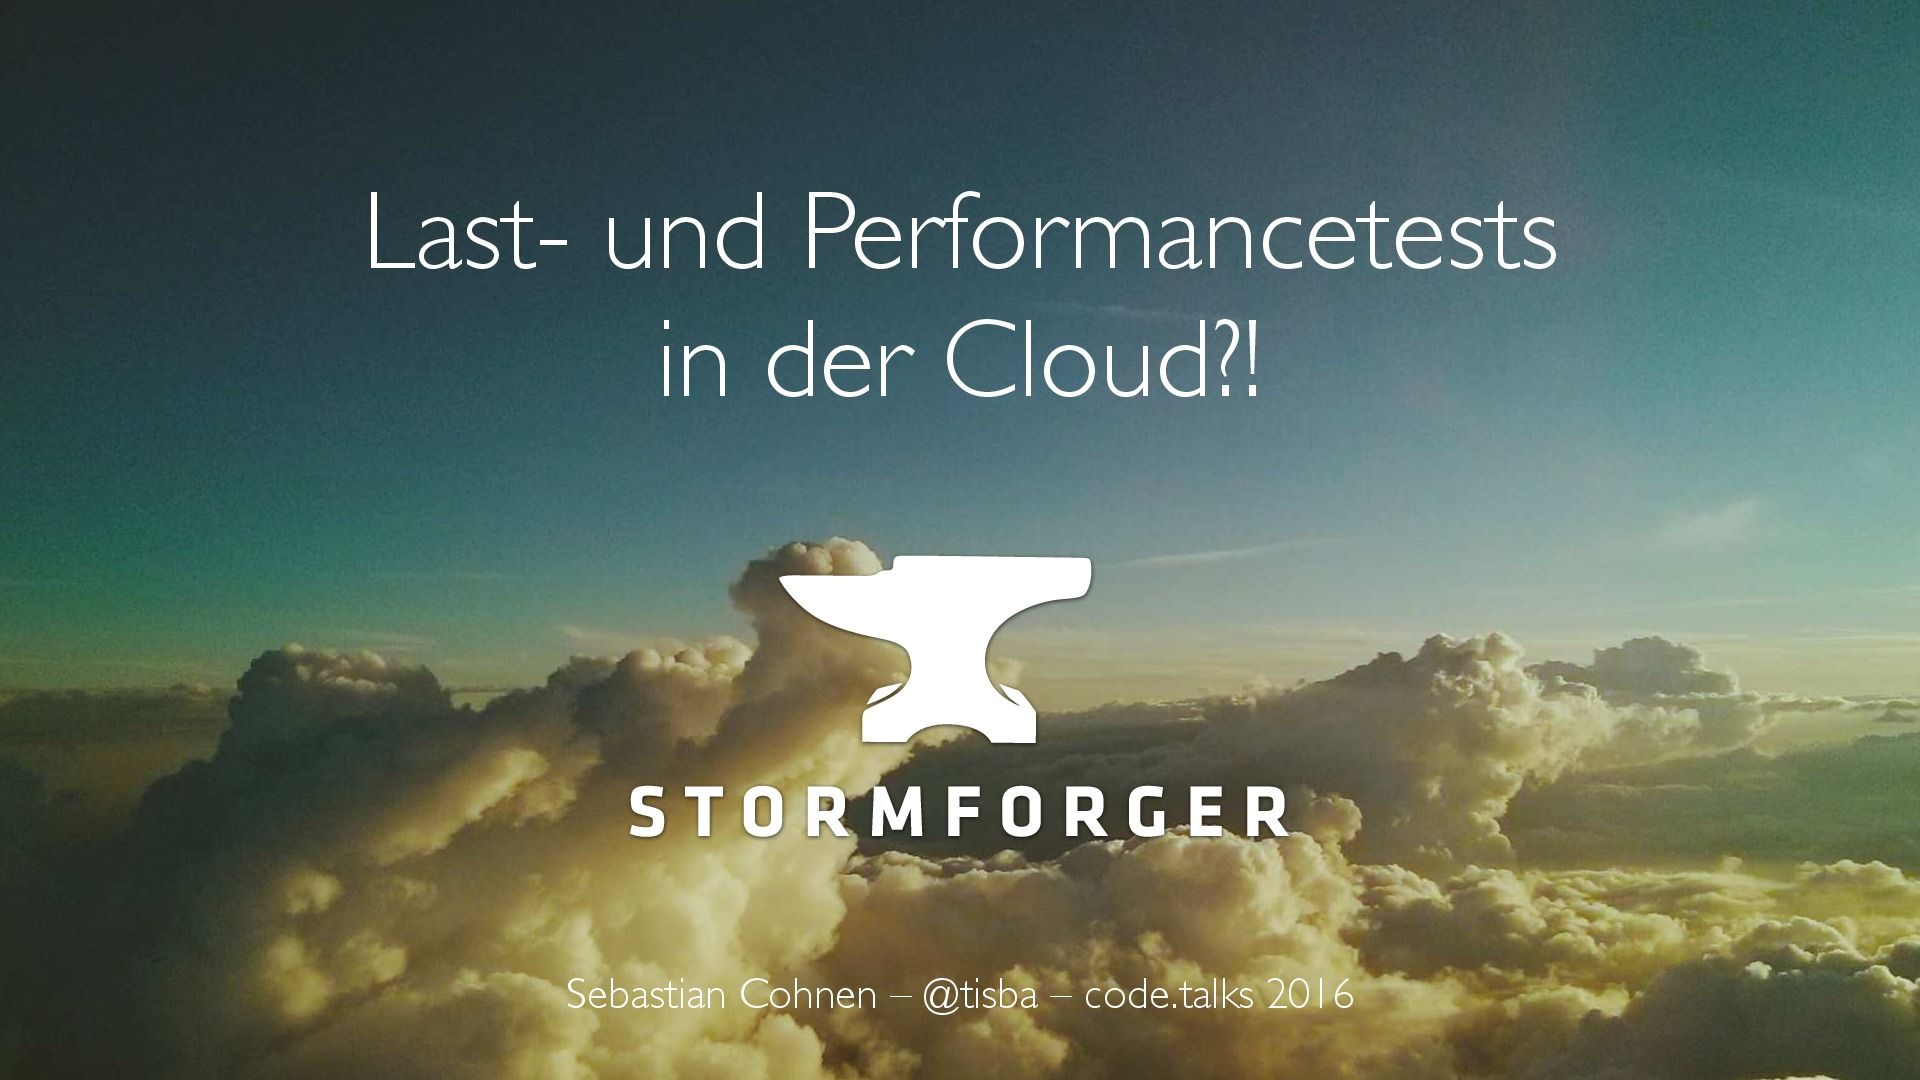 code.talks 2016: Last- und Performancetests in der Cloud [DE]